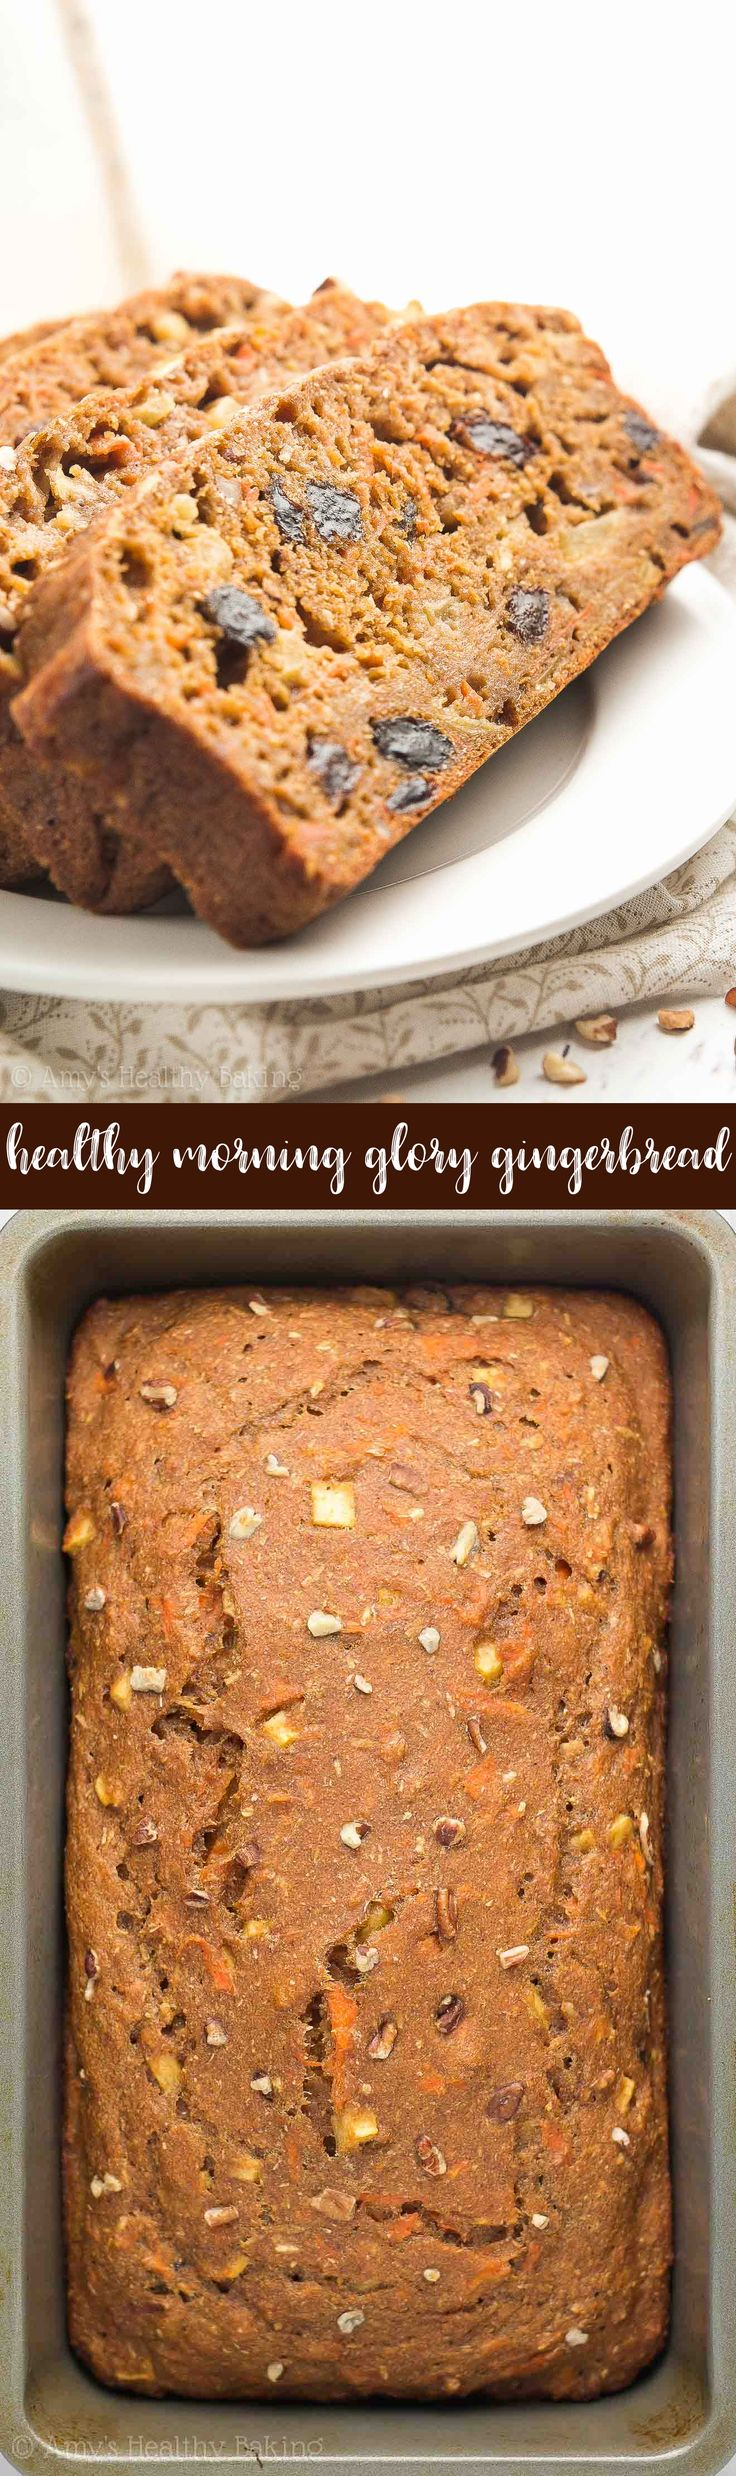 {HEALTHY!} Morning Glory Gingerbread -- only 144 calories & the BEST gingerbread I've ever had! It's SO easy to make & perfect for breakfasts or snacks. This recipe is definitely a keeper! #healthy #recipe #glutenfree #cleaneating